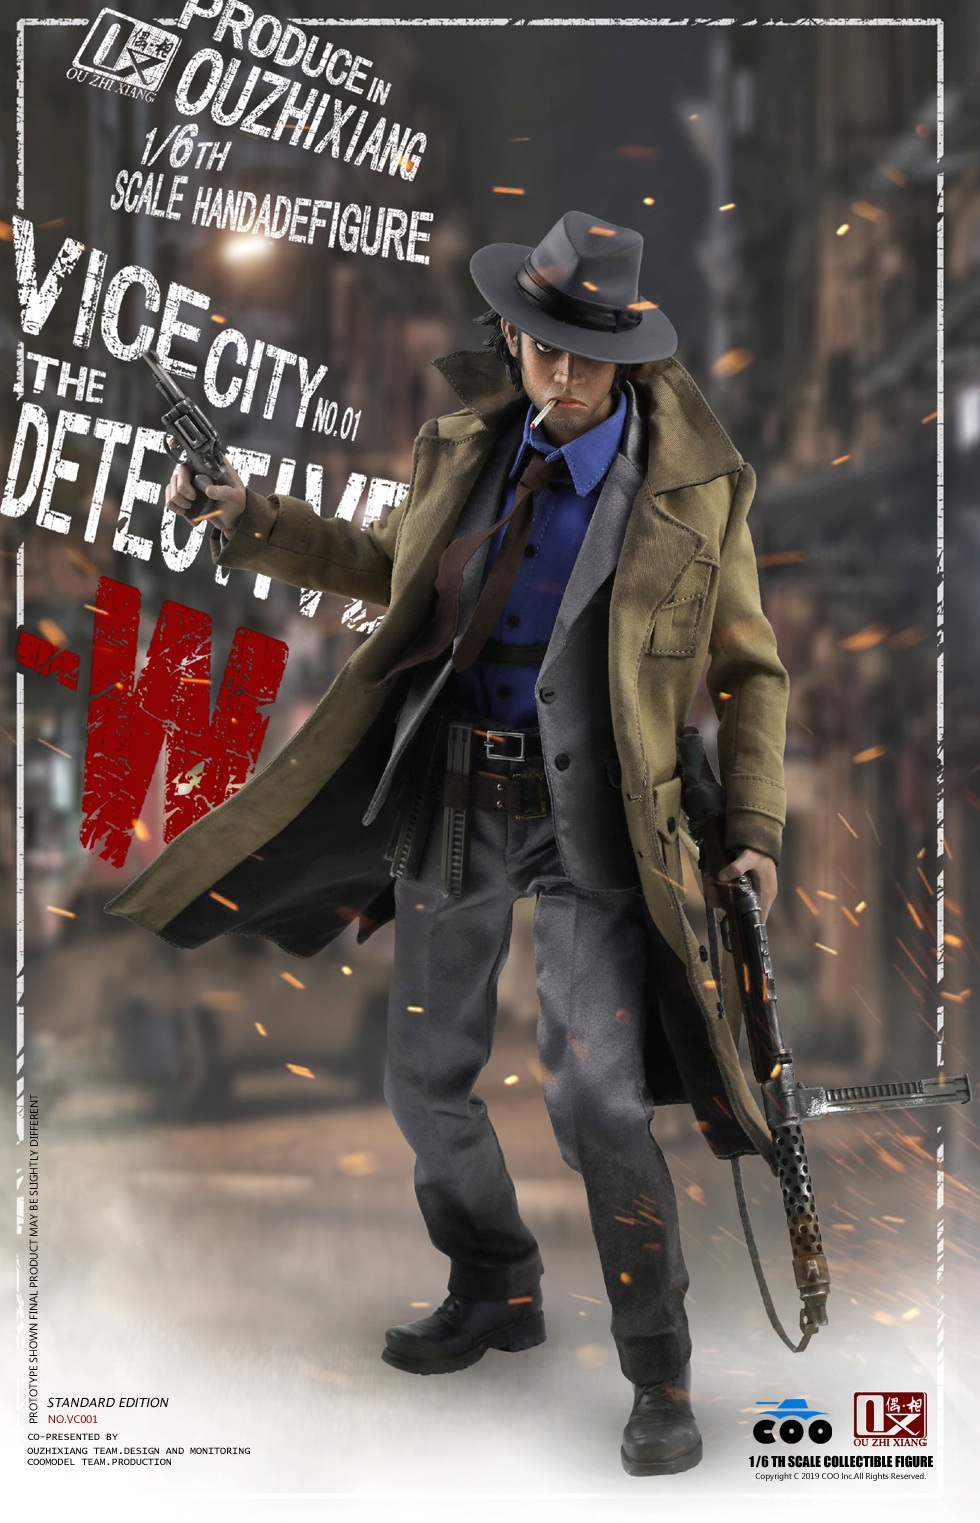 DetectiveW - NEW PRODUCT: COOMODEL X Even: 1/6 Vice City - Detective W [Standard Edition & Collector's Edition] - Four-headed configuration 20262310